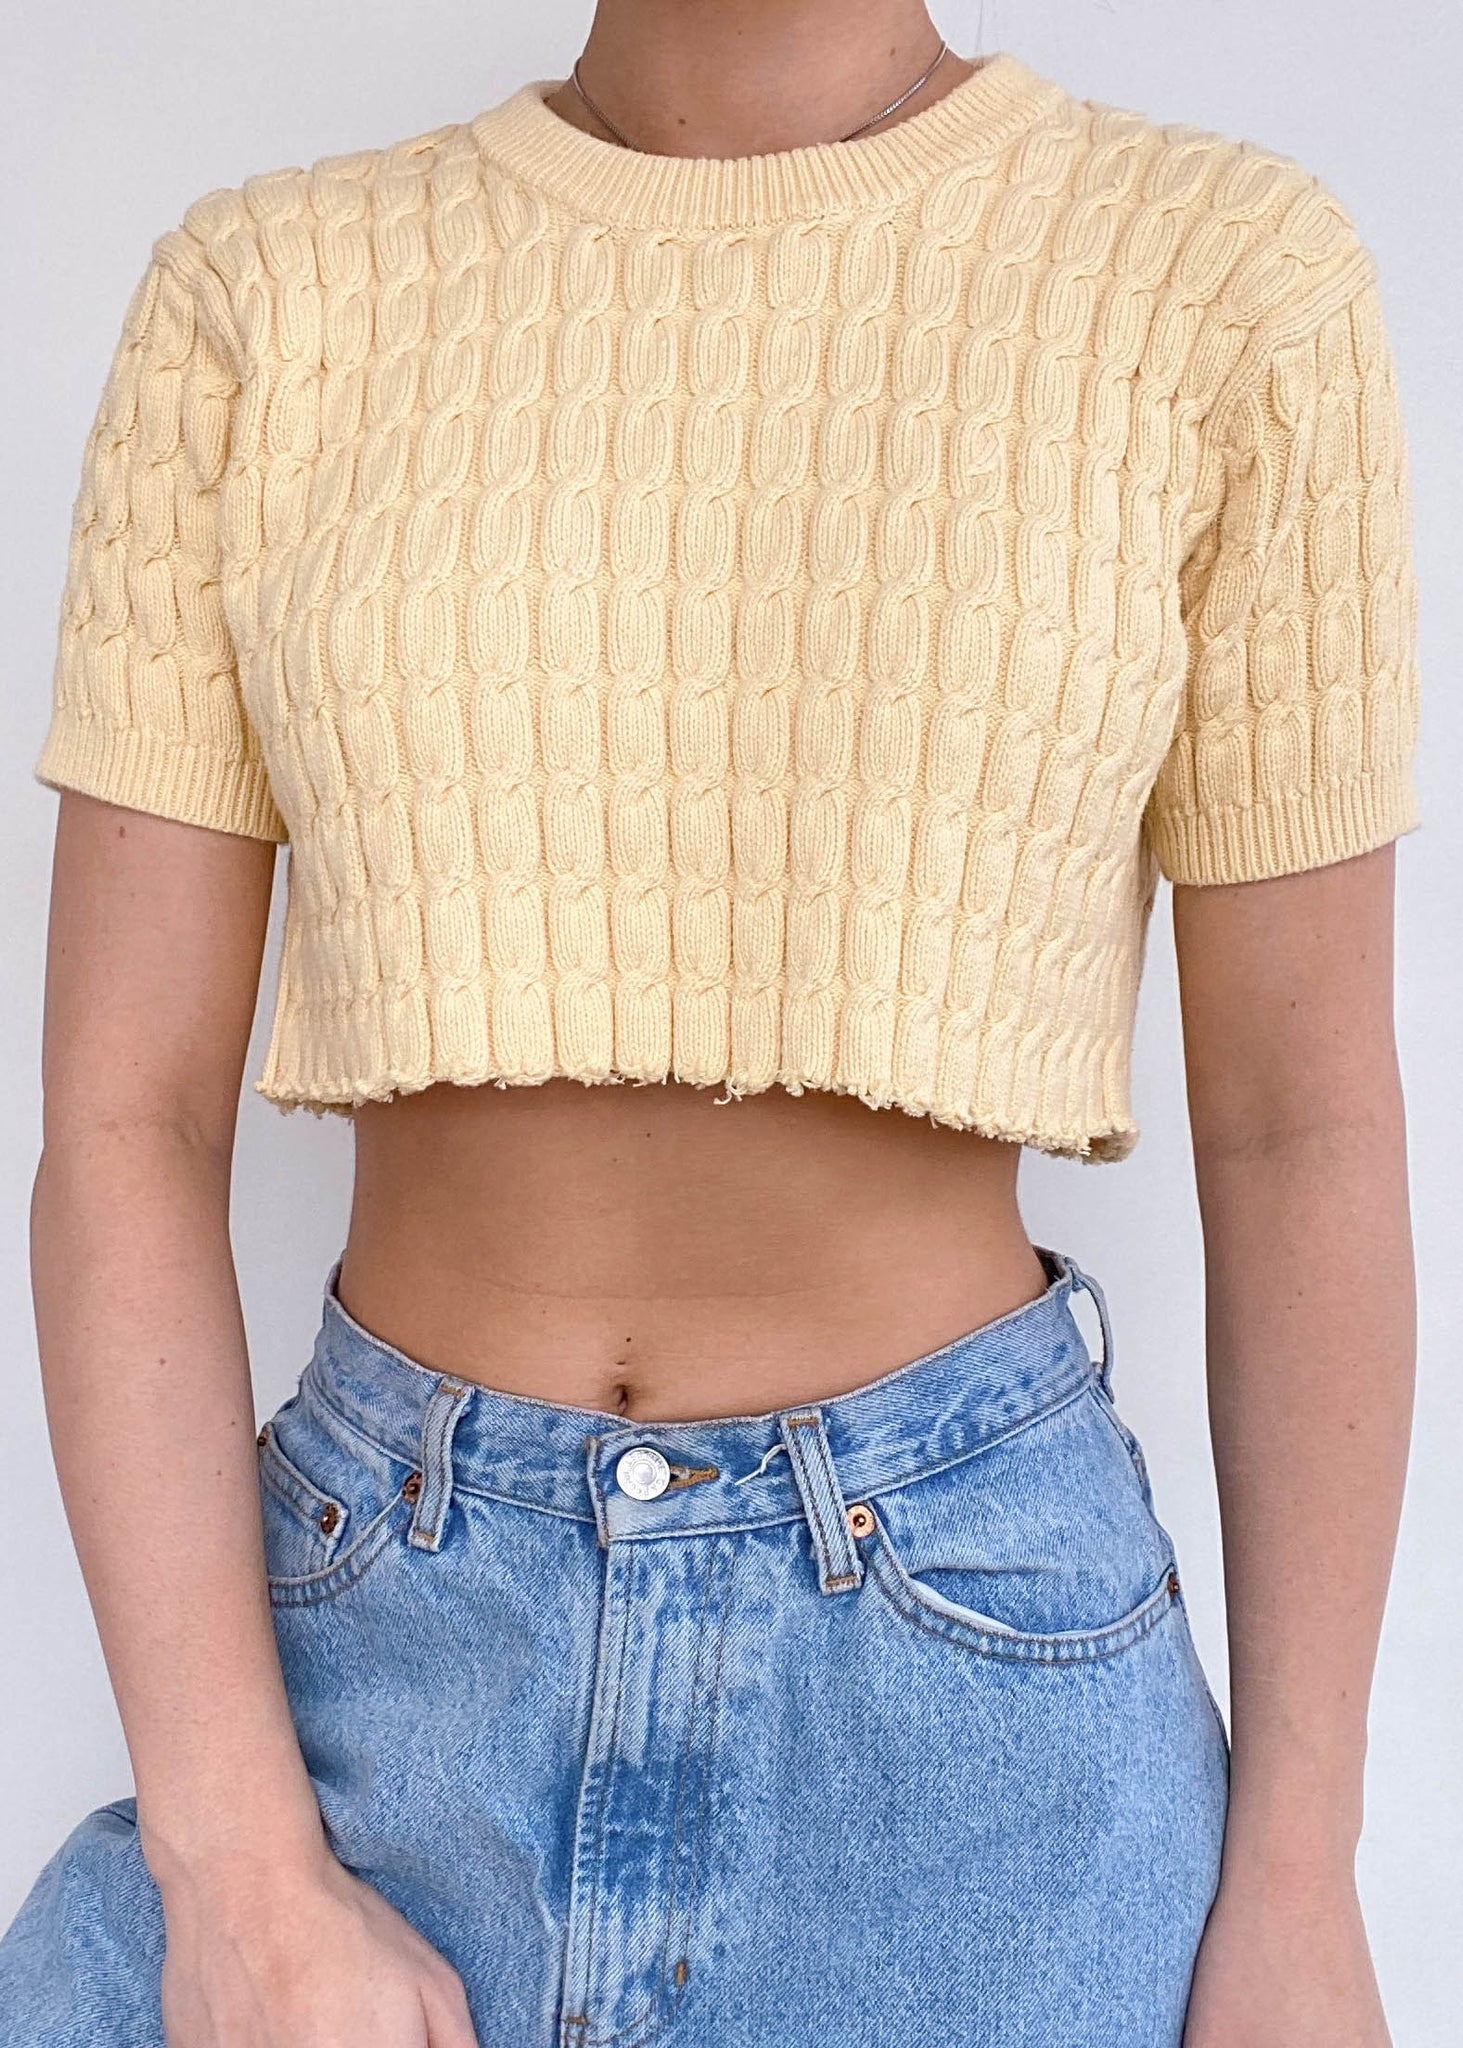 Marcelle Knit Top